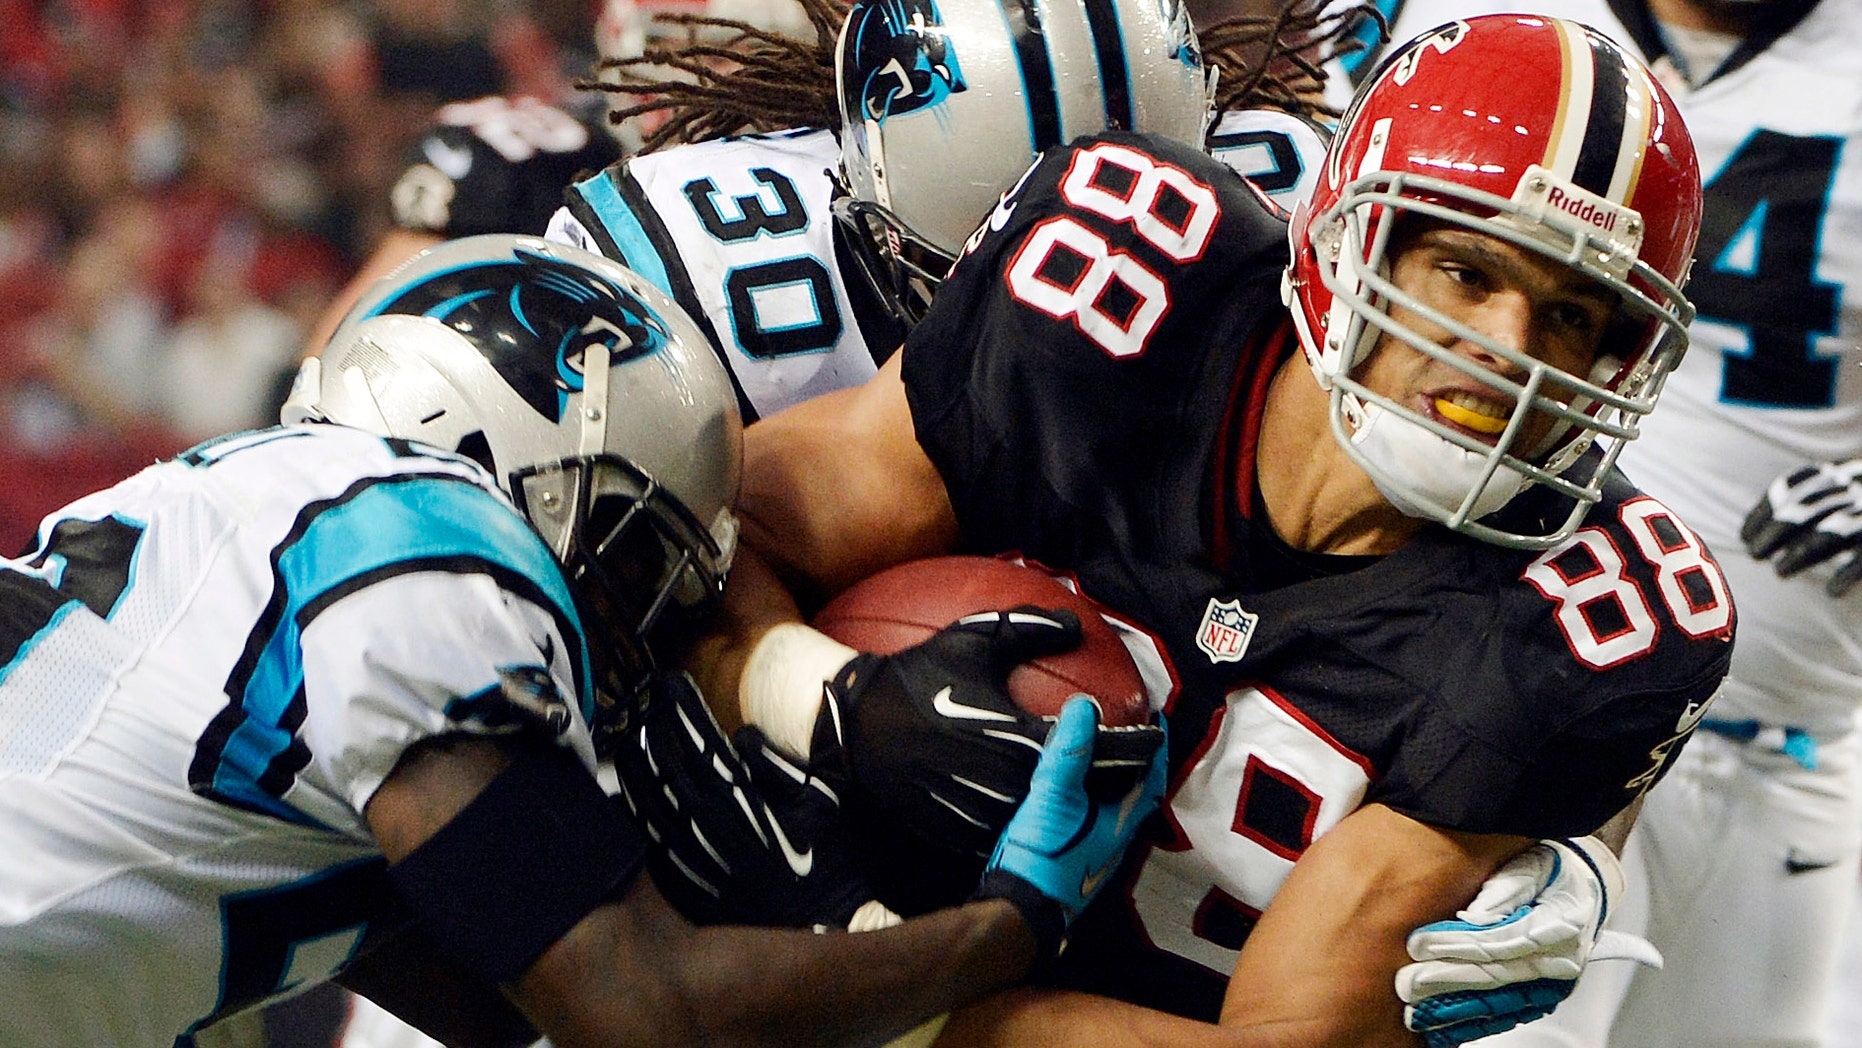 FILE - In this Sept. 30, 2012, file photo, Atlanta Falcons tight end Tony Gonzalez (88) fights for extra yardage during the first half of an NFL football game against the Carolina Panthers in Atlanta. Gonzalez wants to go out with a ring. First, he's got to win a playoff game. In what he keeps insisting will likely be his final season, the Falcons' age-defying tight end is looking forward to taking another shot at his first postseason victory. (AP Photo/Rich Addicks, File)